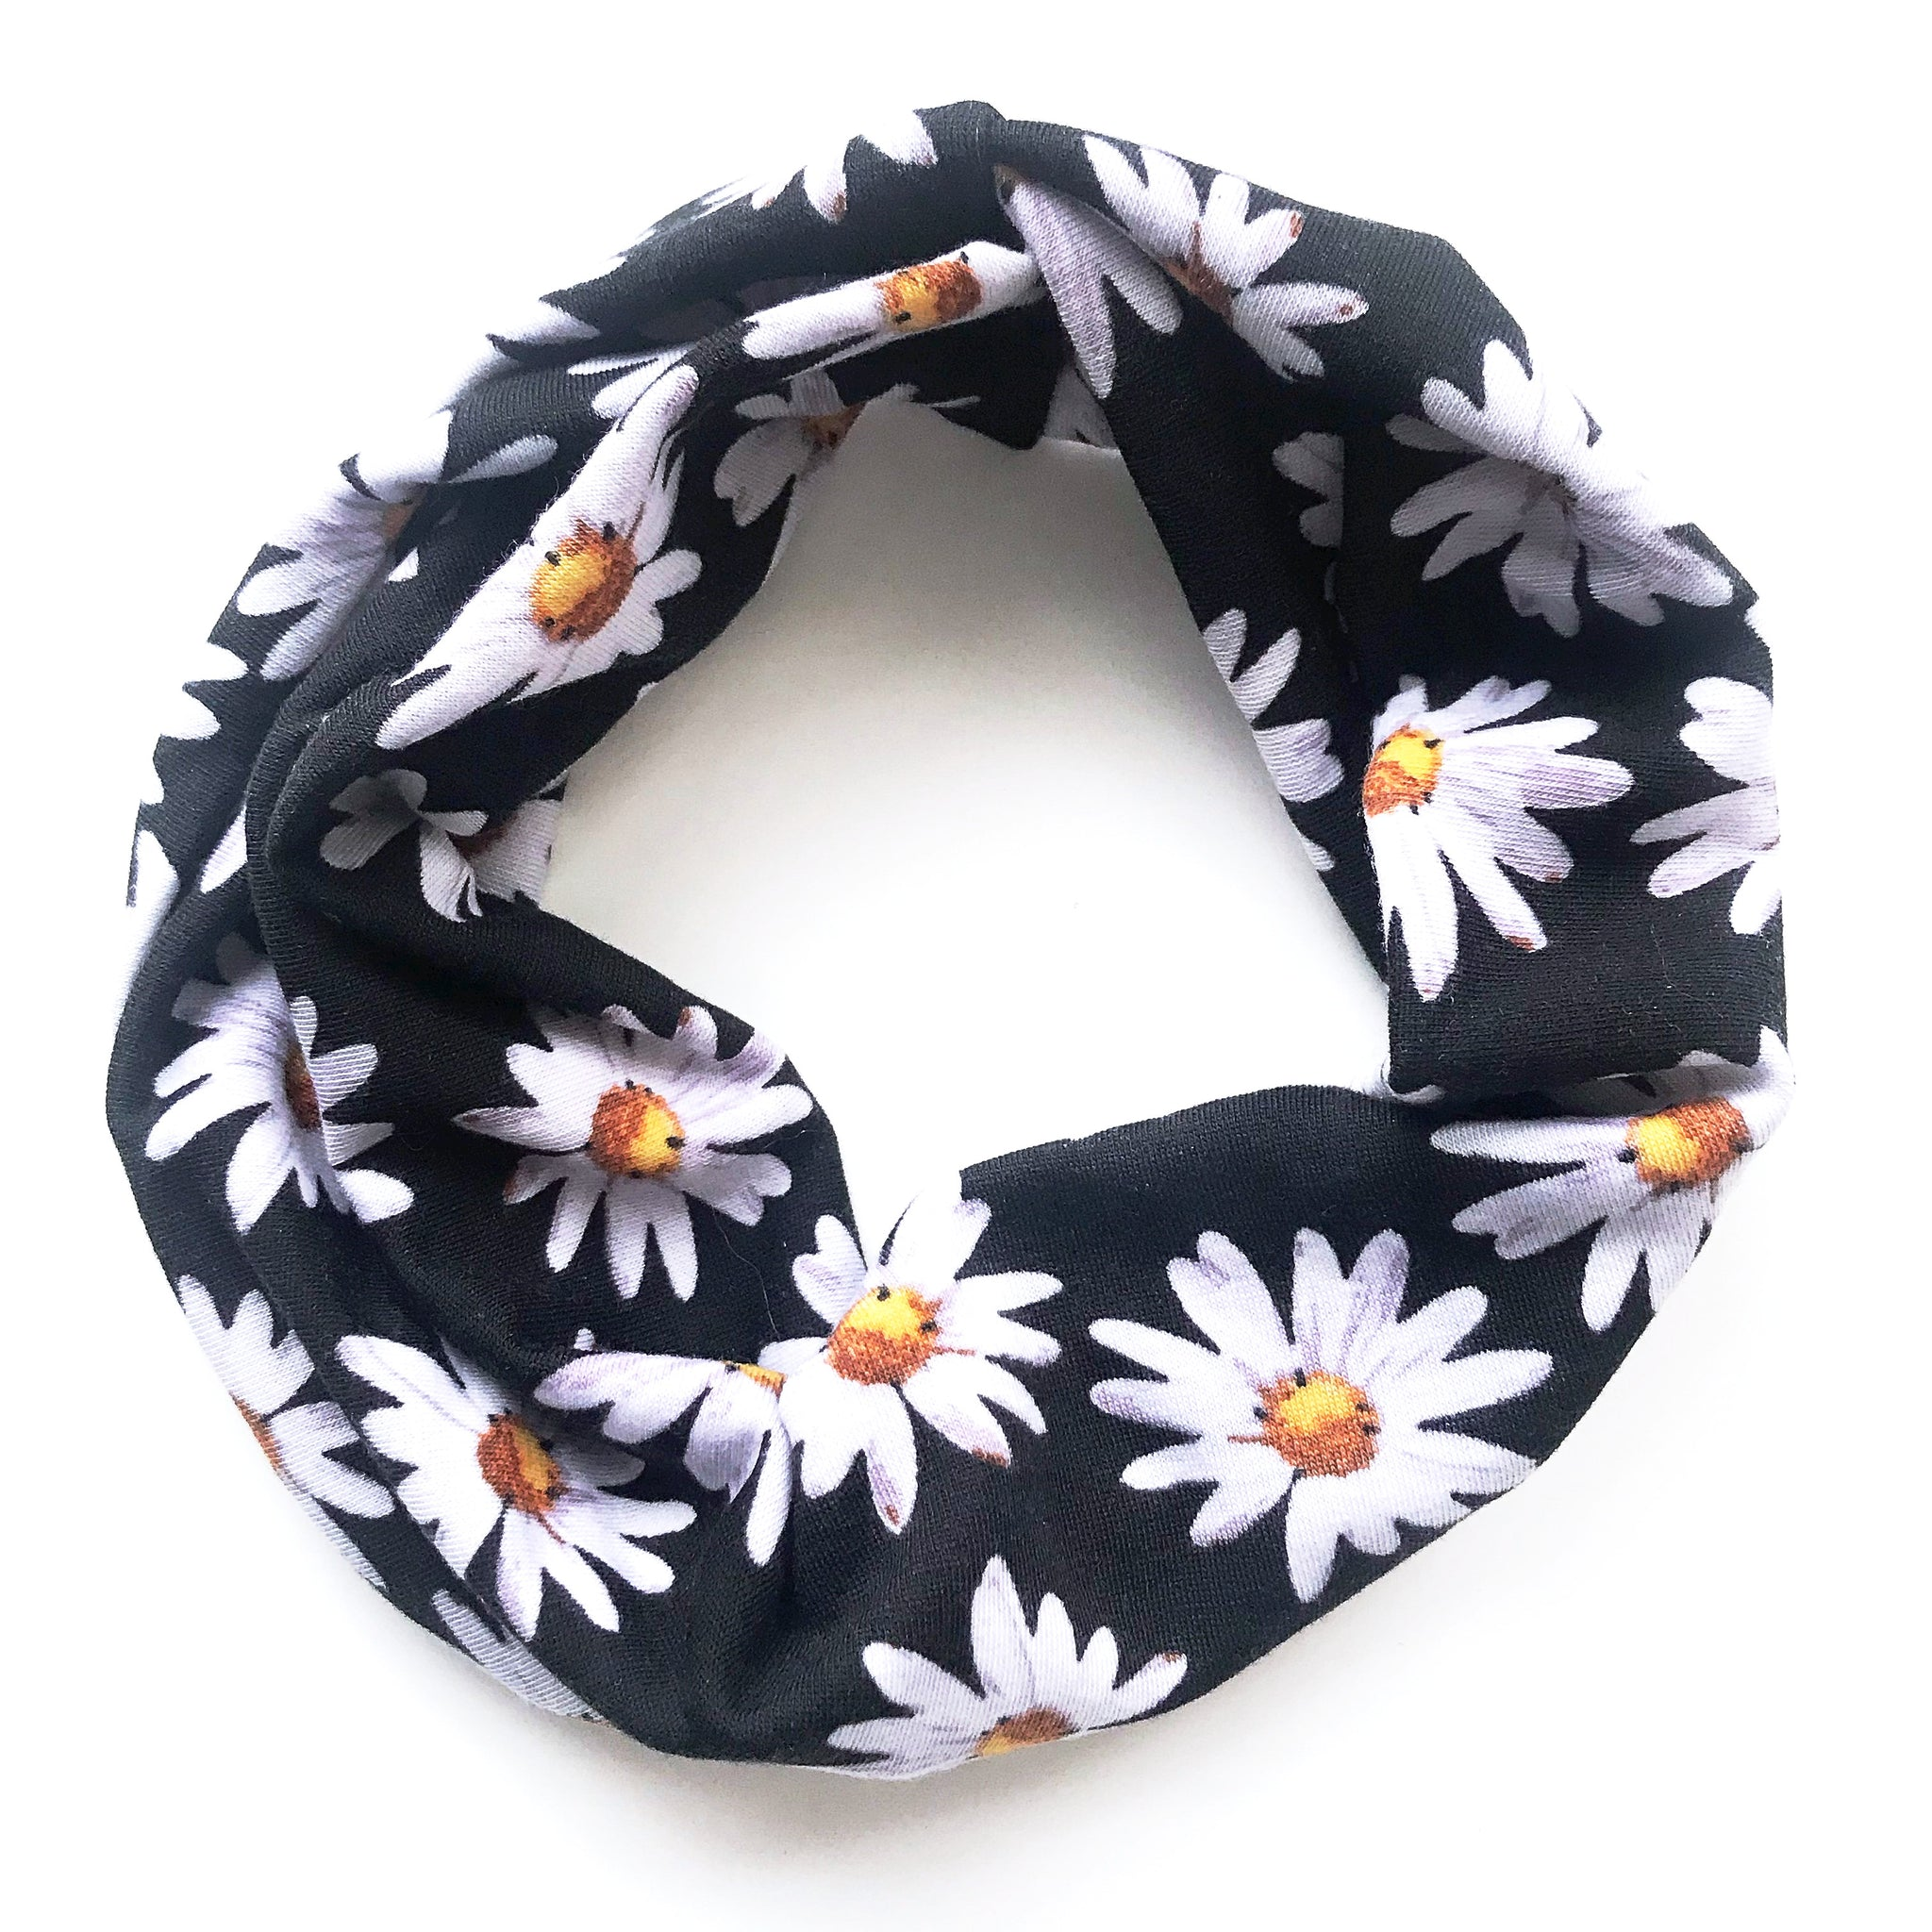 Ditzy Daisy Double Twist Headband